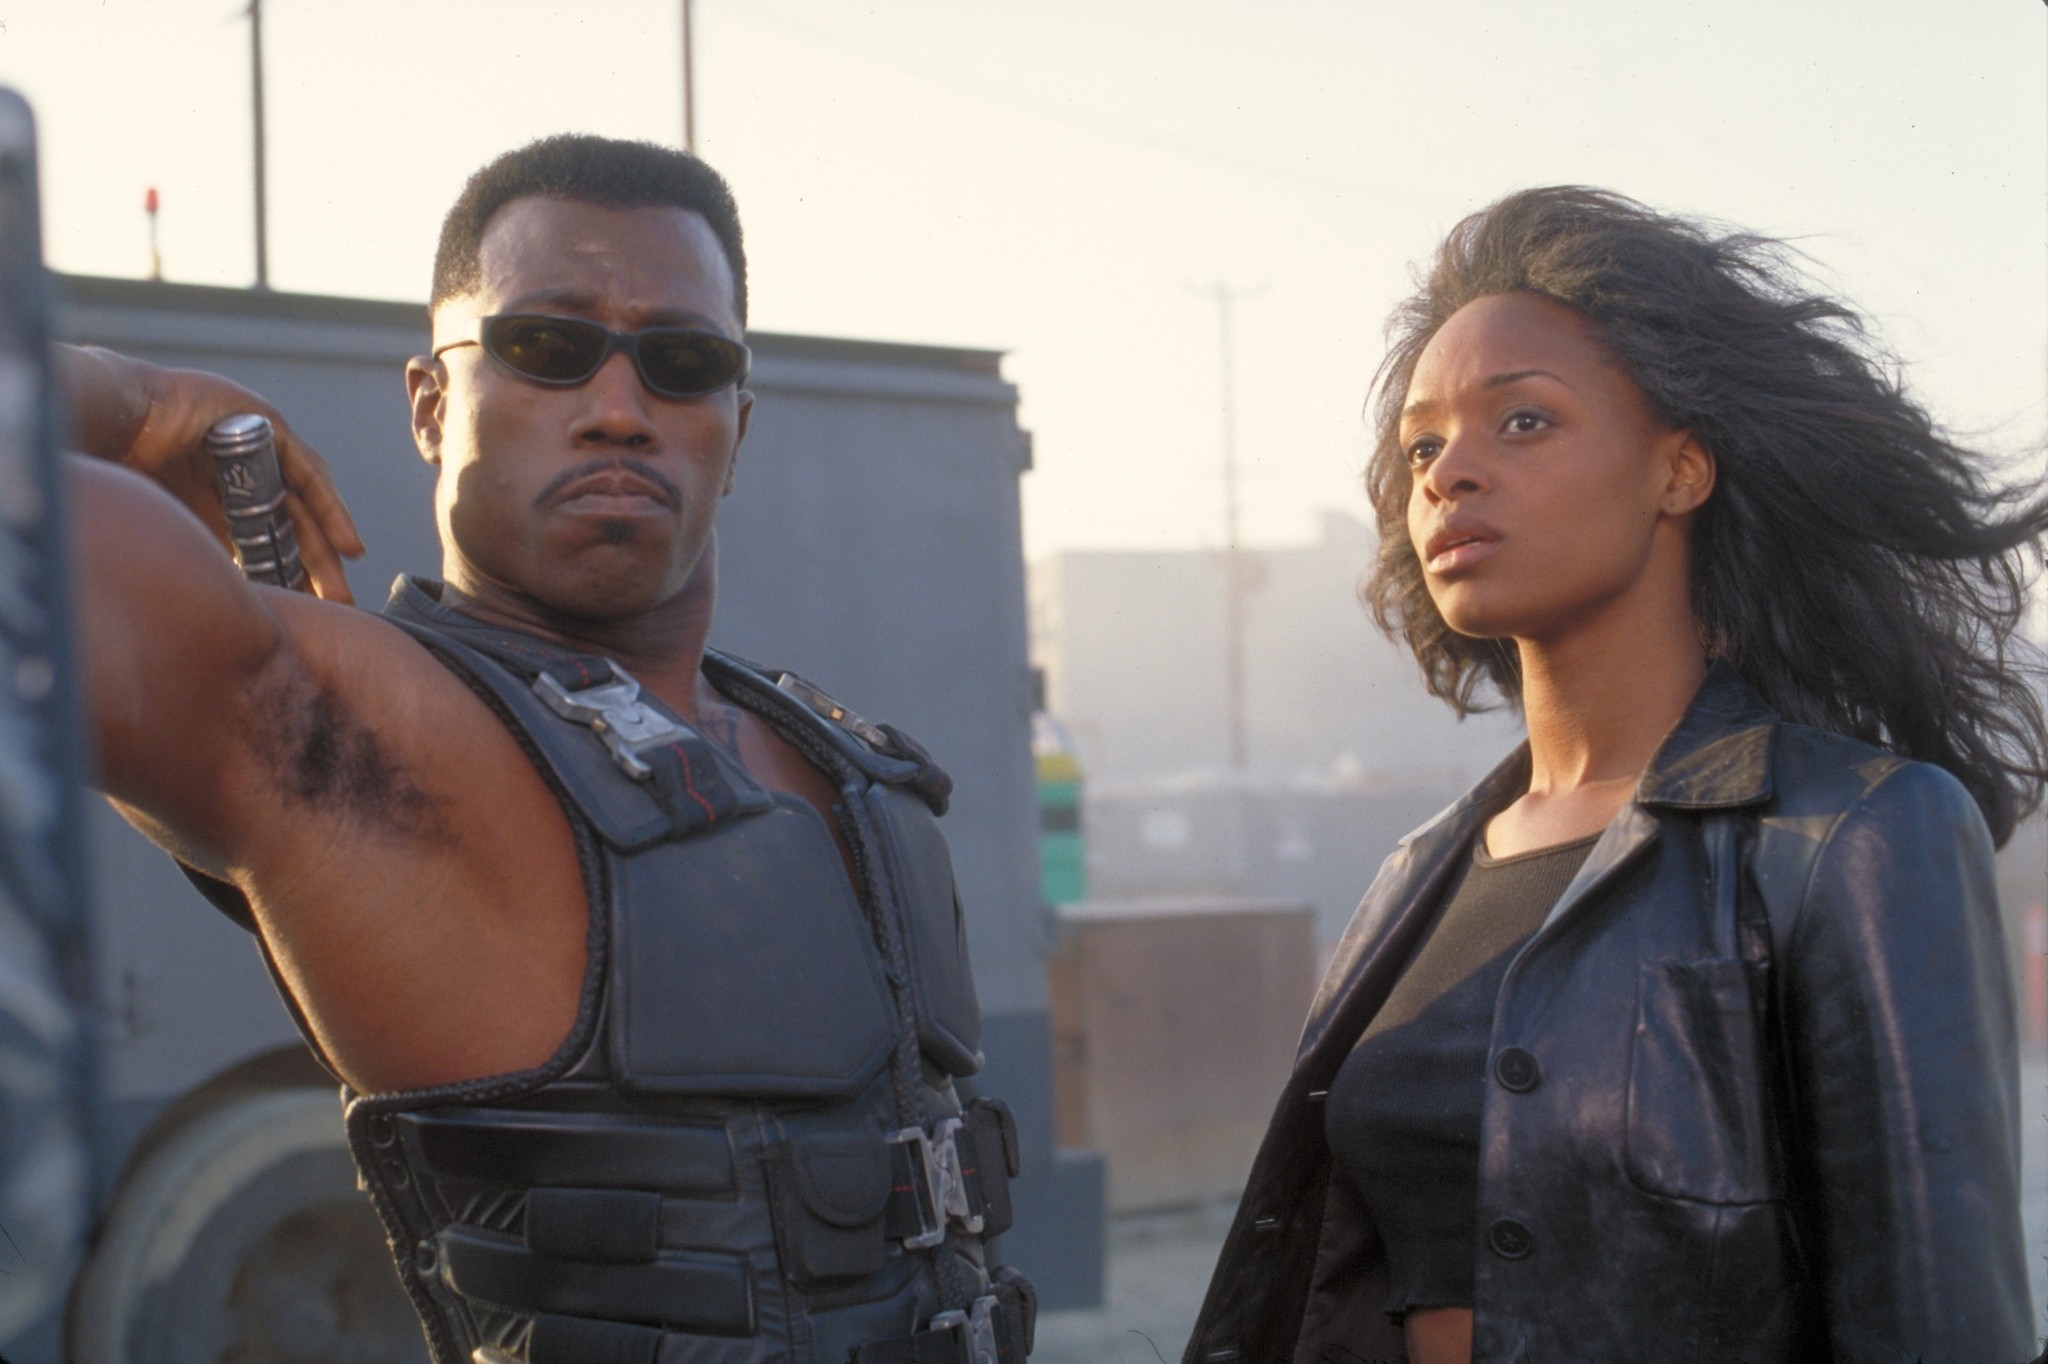 Wesley Snipes and N'Bushe Wright in Blade (1998)